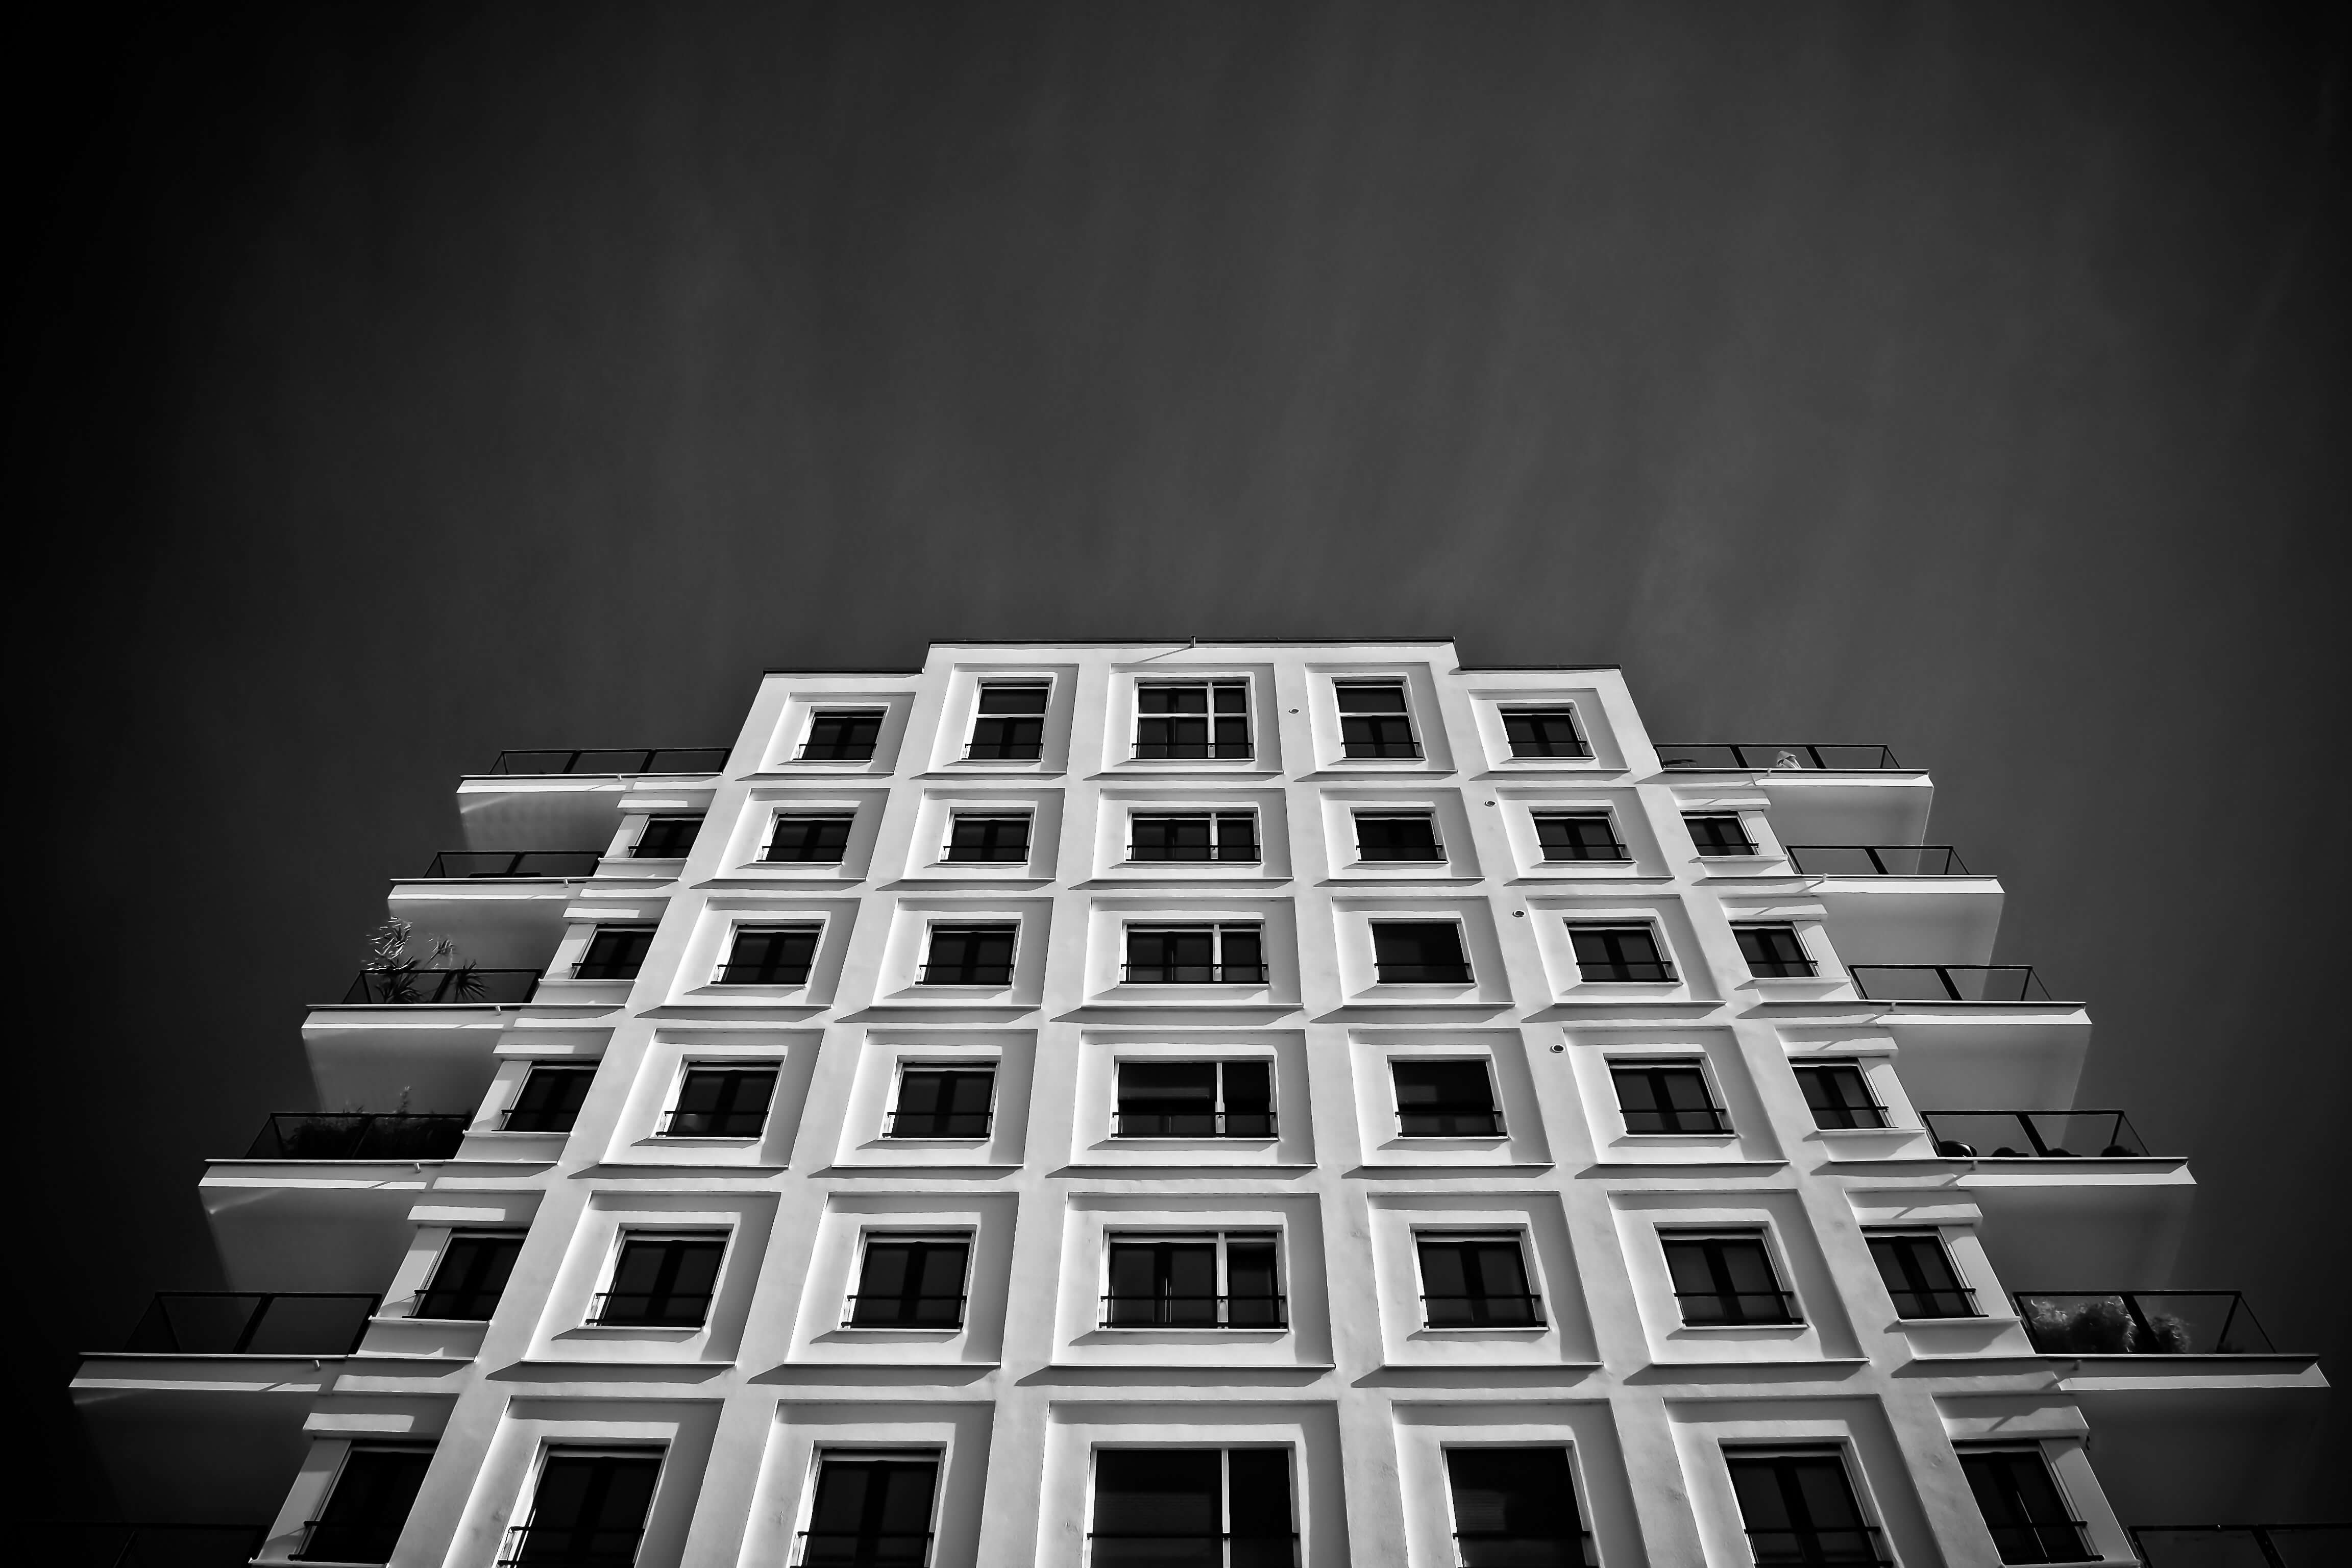 abstract-architecture-balcony-black-and-white-271713 (1)